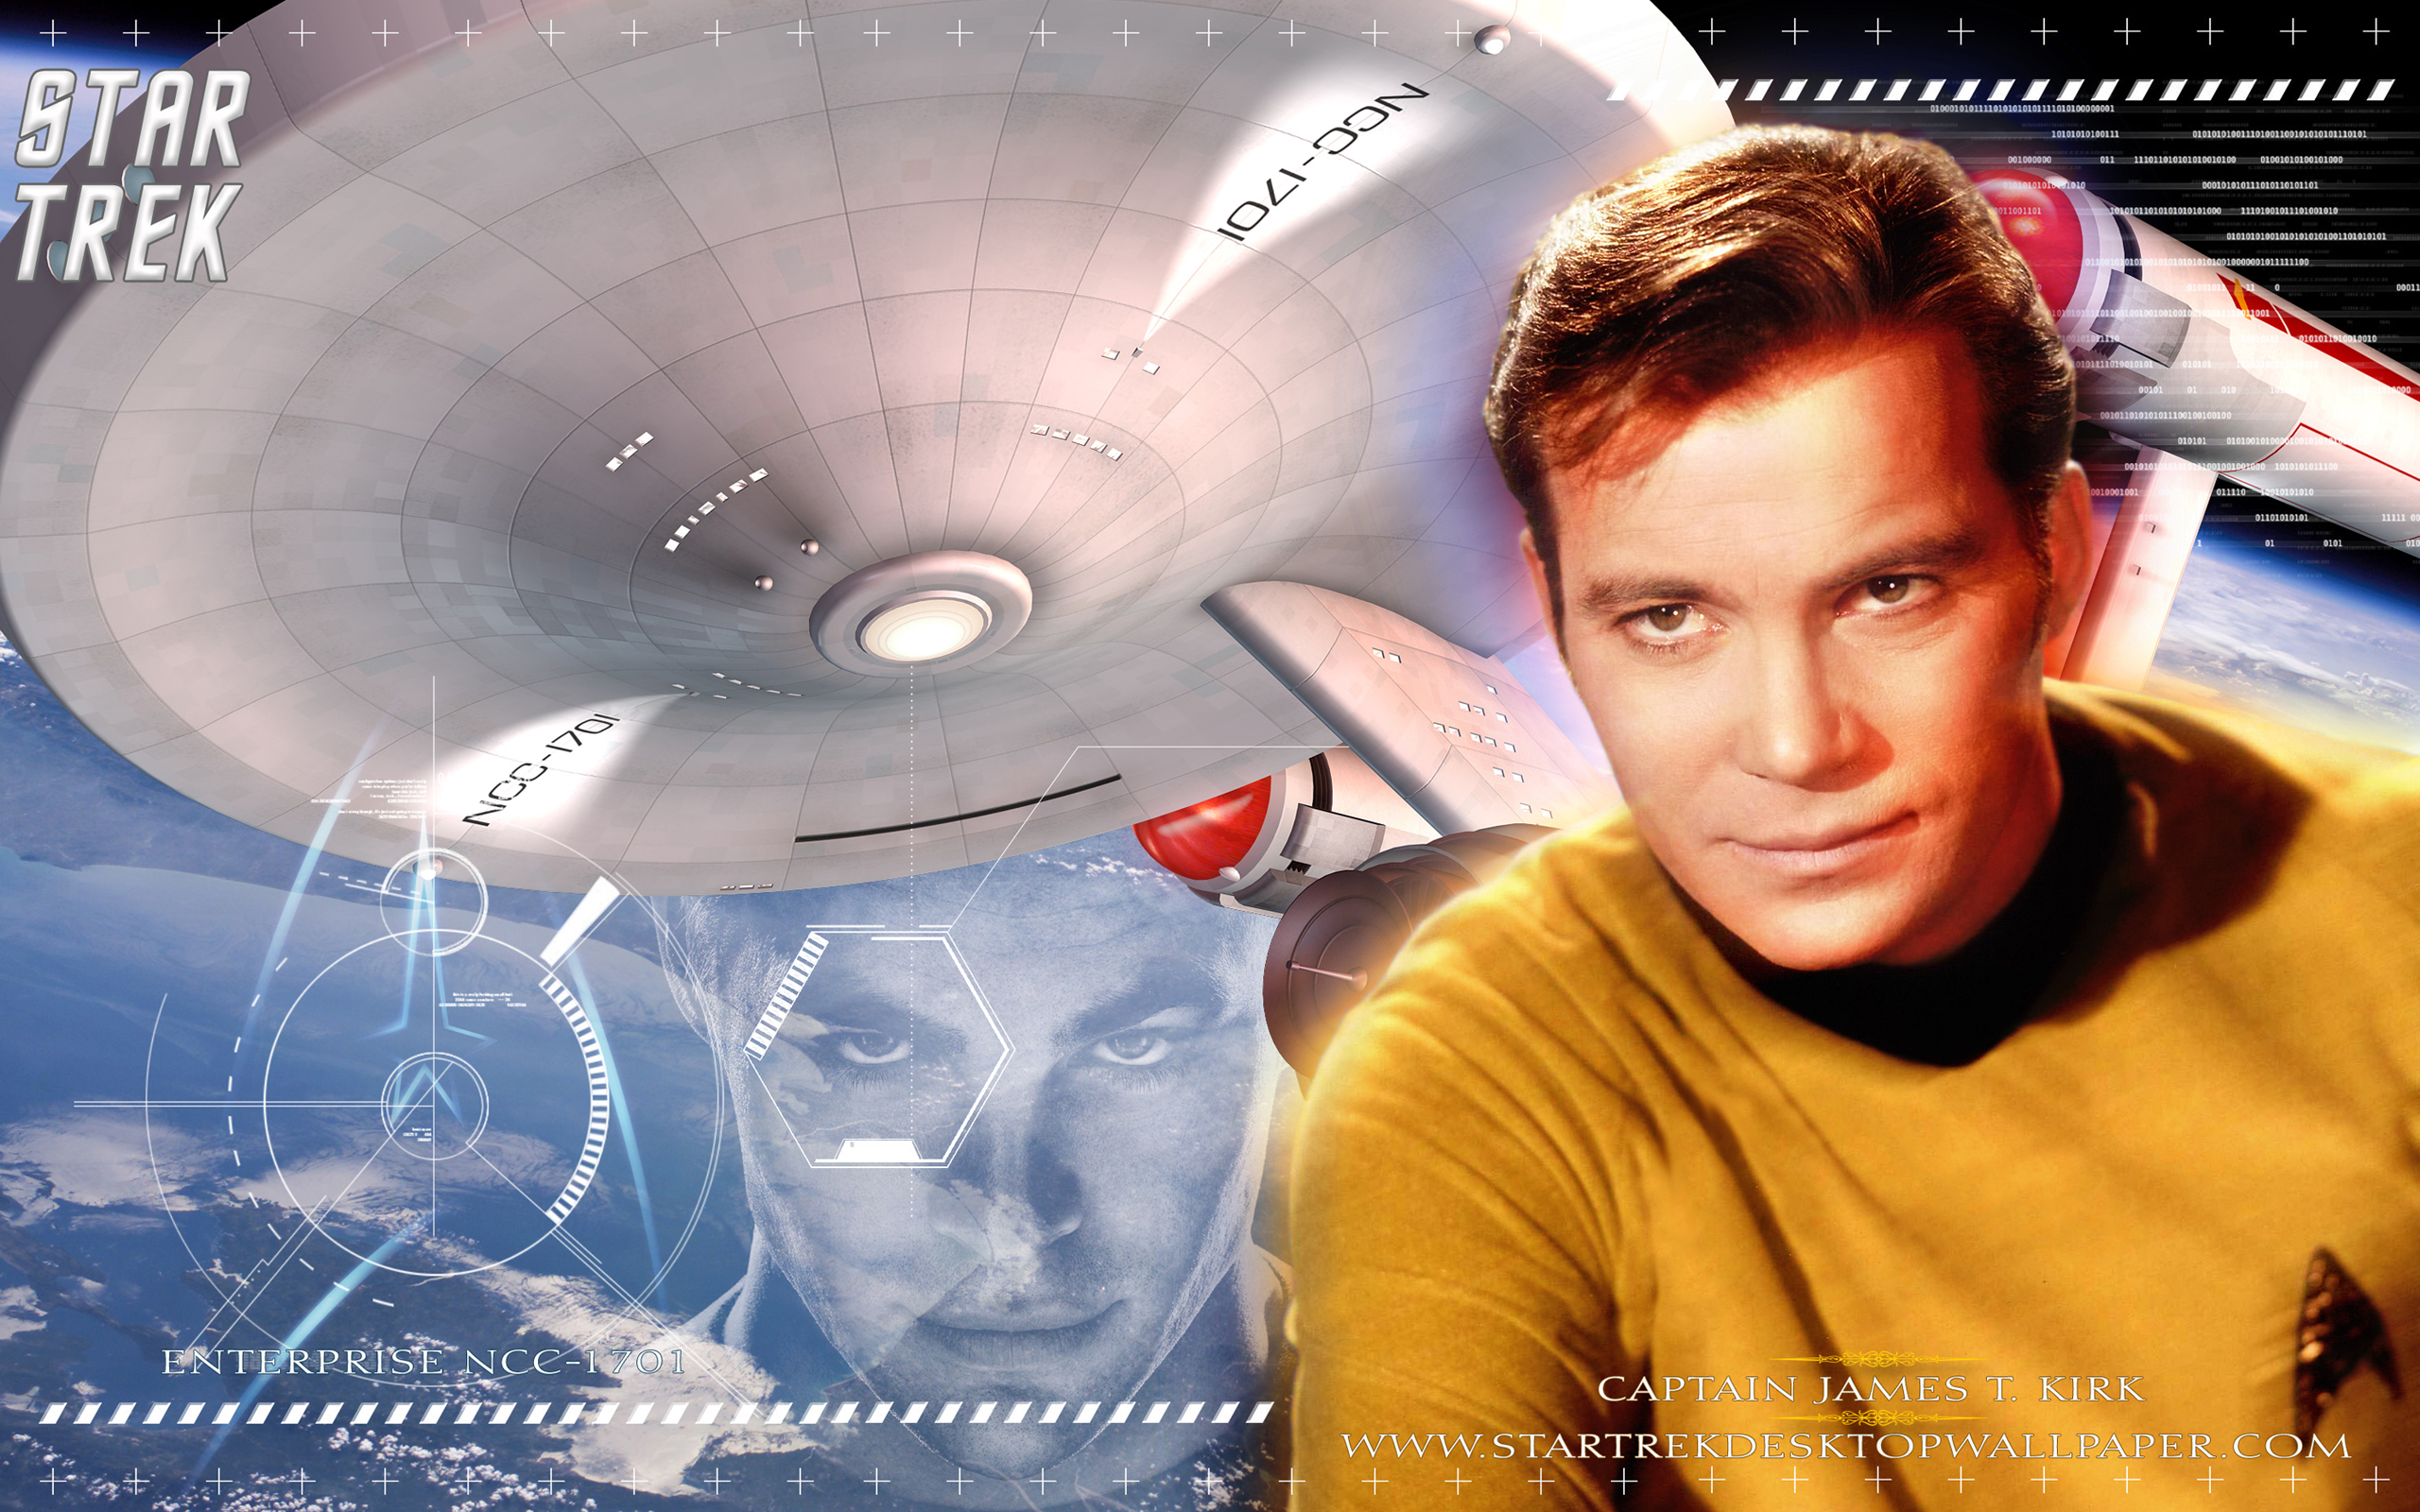 Star Trek Wallpapers Captain